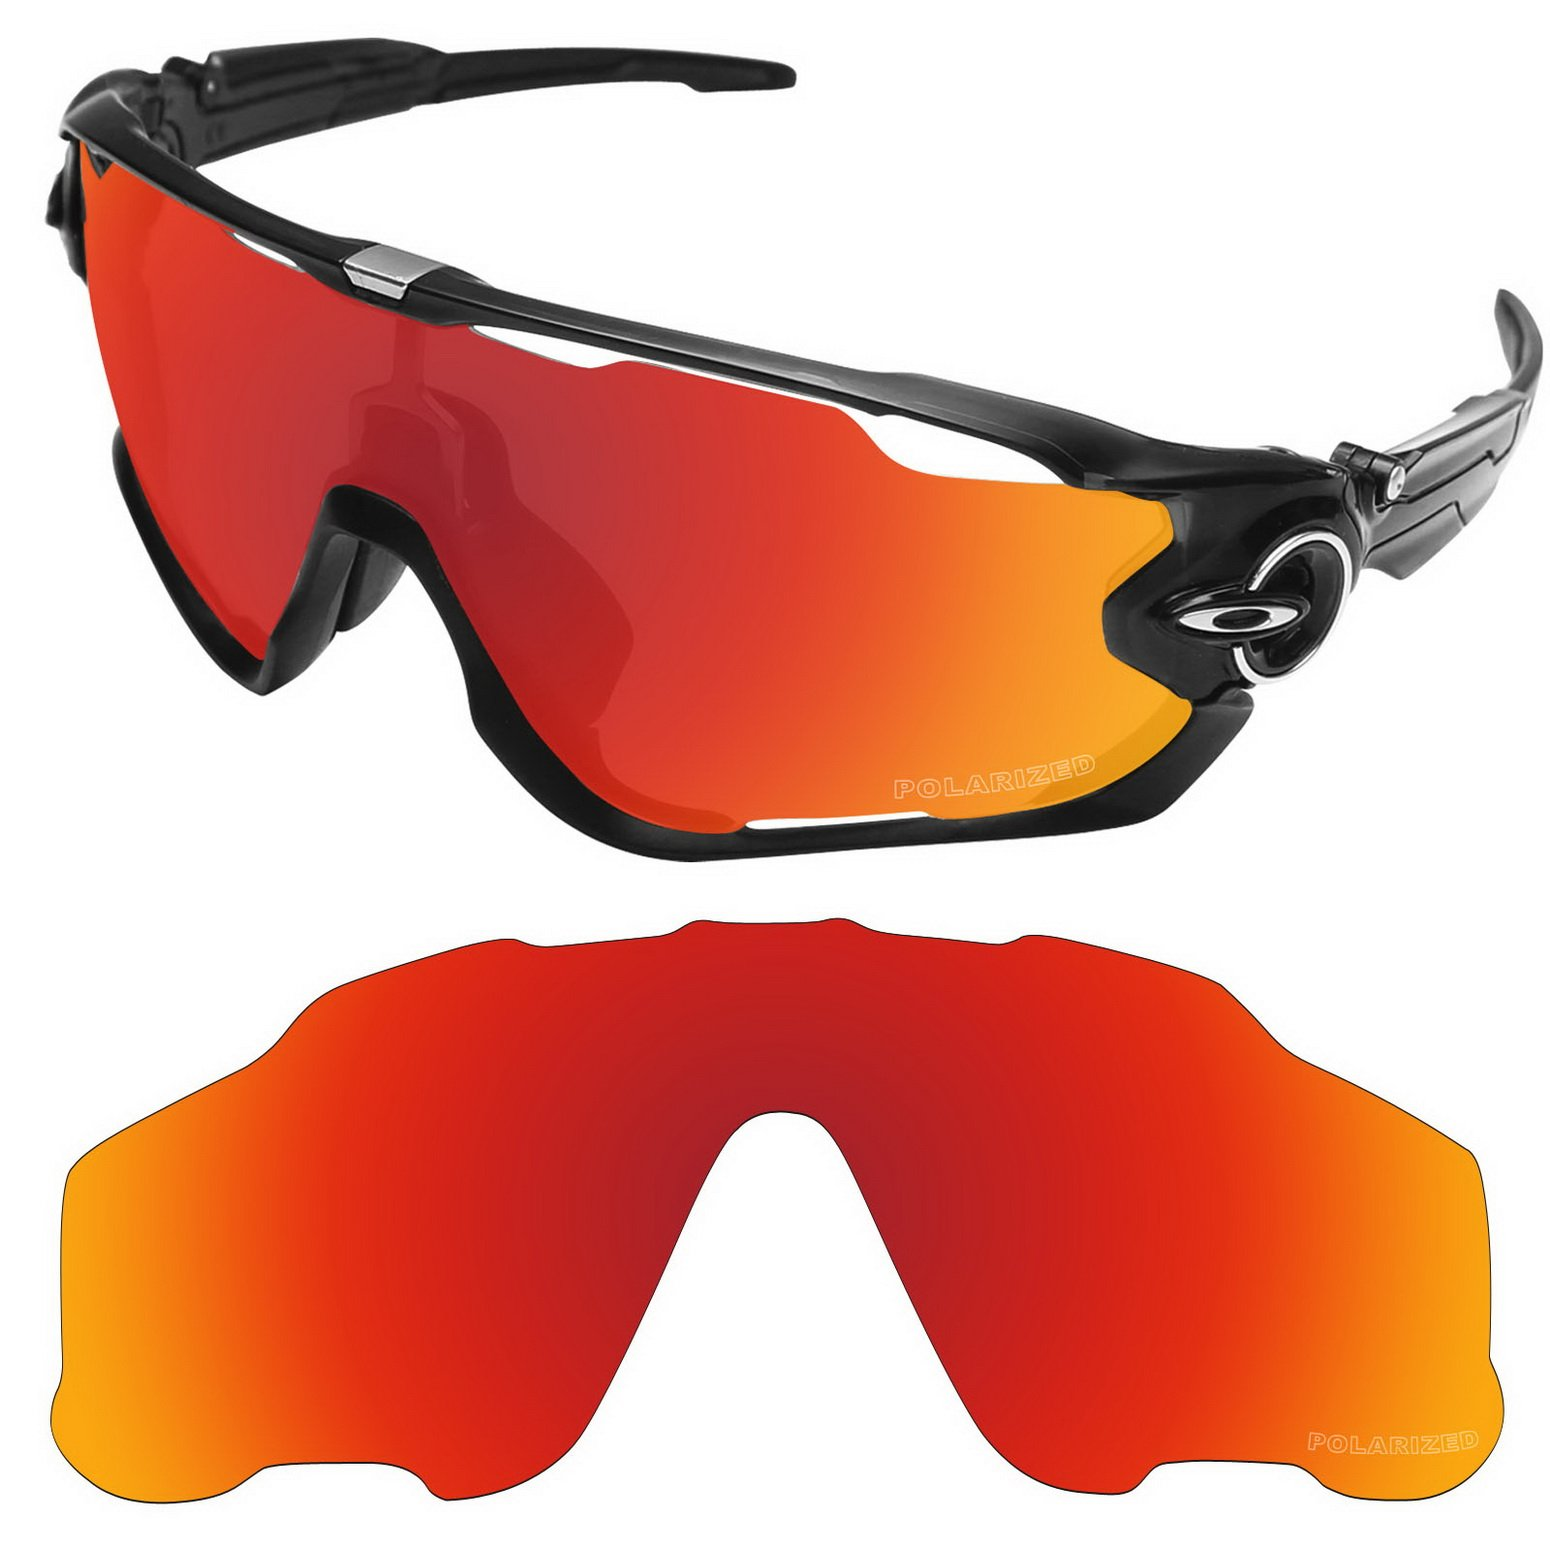 d8c402d291 Tintart Performance Lenses Compatible with Oakley Jawbreaker Polarized  Etched-Fire Red